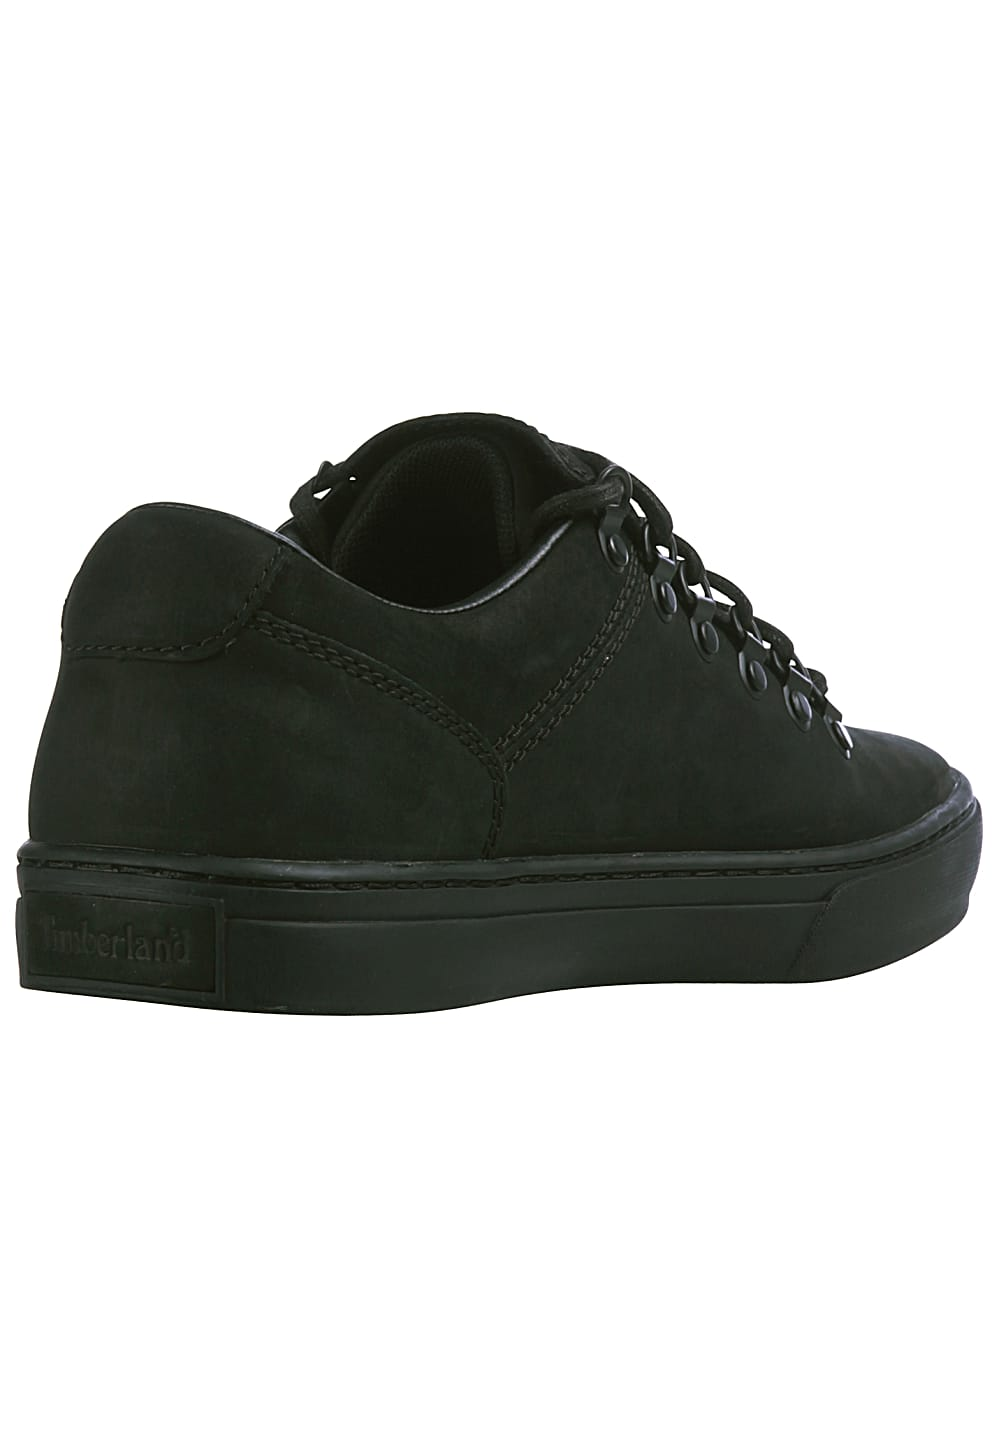 TIMBERLAND Adv 2.0 Cupsole Alpine Oxford Sneakers for Men Black